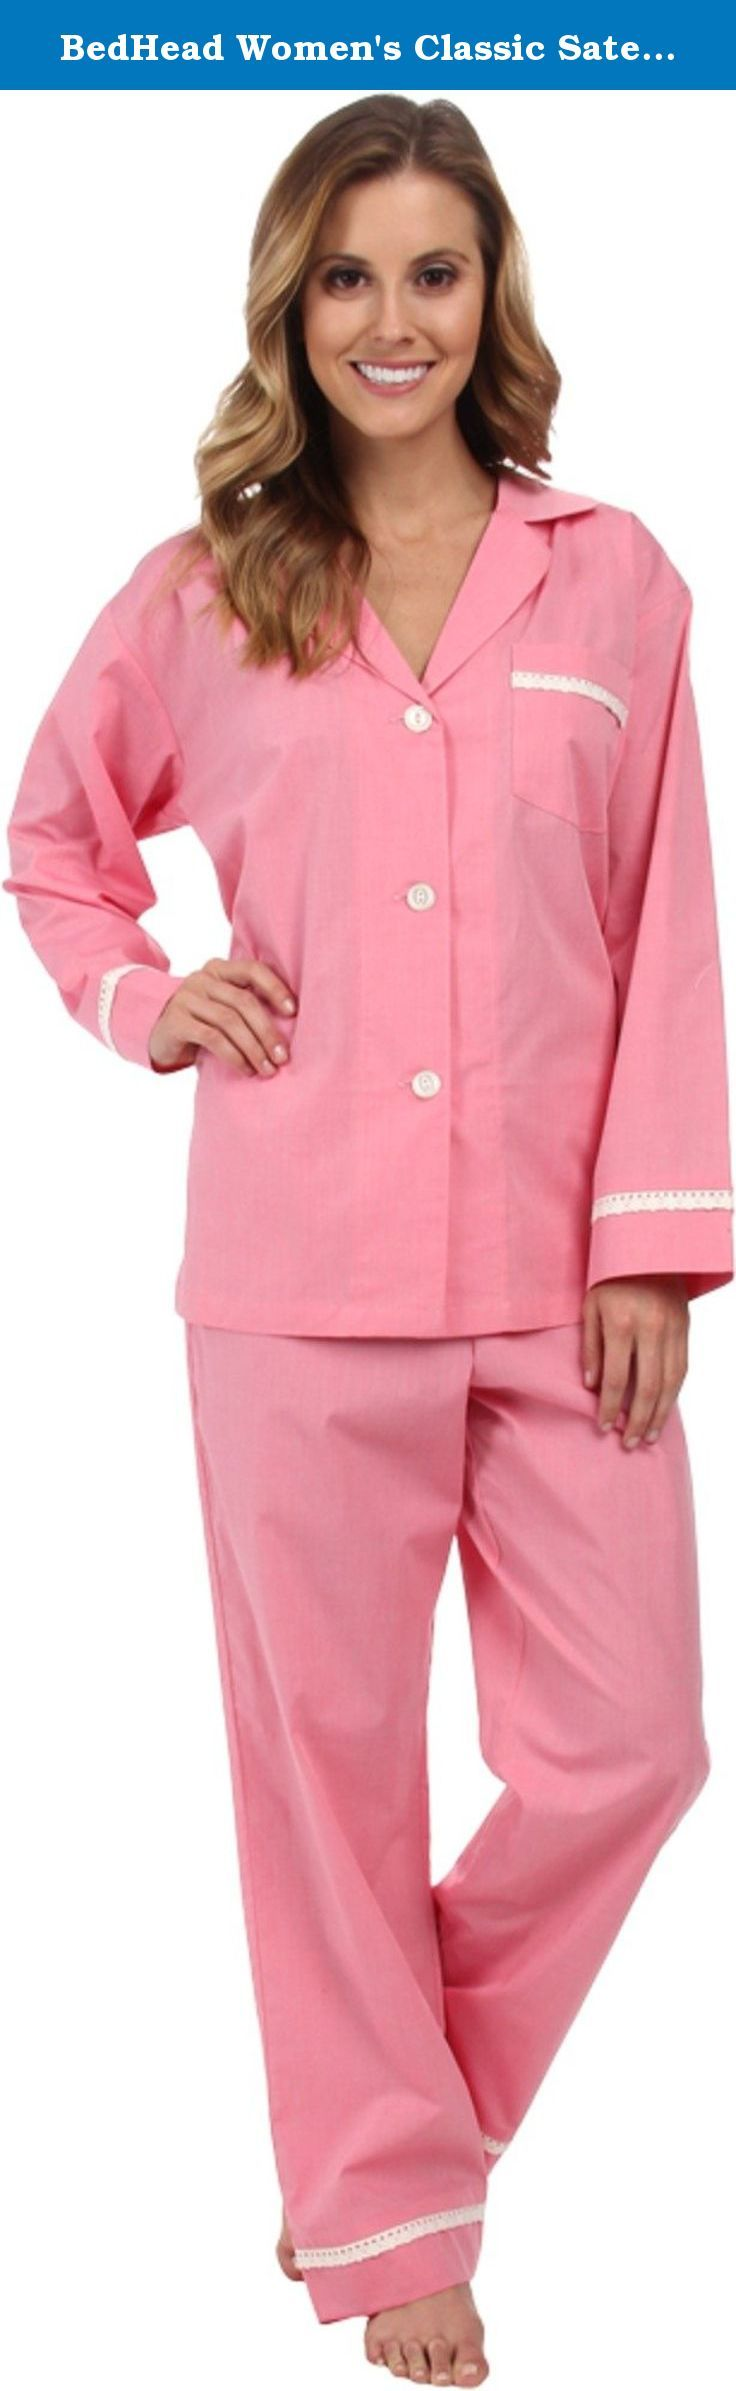 BedHead Women's Classic Sateen PJ Dusty Pink Pajama Set XS (US 2-4). Classic pajama set is fabricated from luxuriously soft and smooth cotton sateen. Long-sleeve top boasts a notched collar, chest patch pocket, and button front. Pajama pant features a lightly elasticized waist and drawstring tie for an easy, adjustable fit. Allover solid piping supplies elegant style. BedHead pajamas are celebrity favorites, often appearing on prime-time TV and in leading magazines. 100% cotton. Machine…